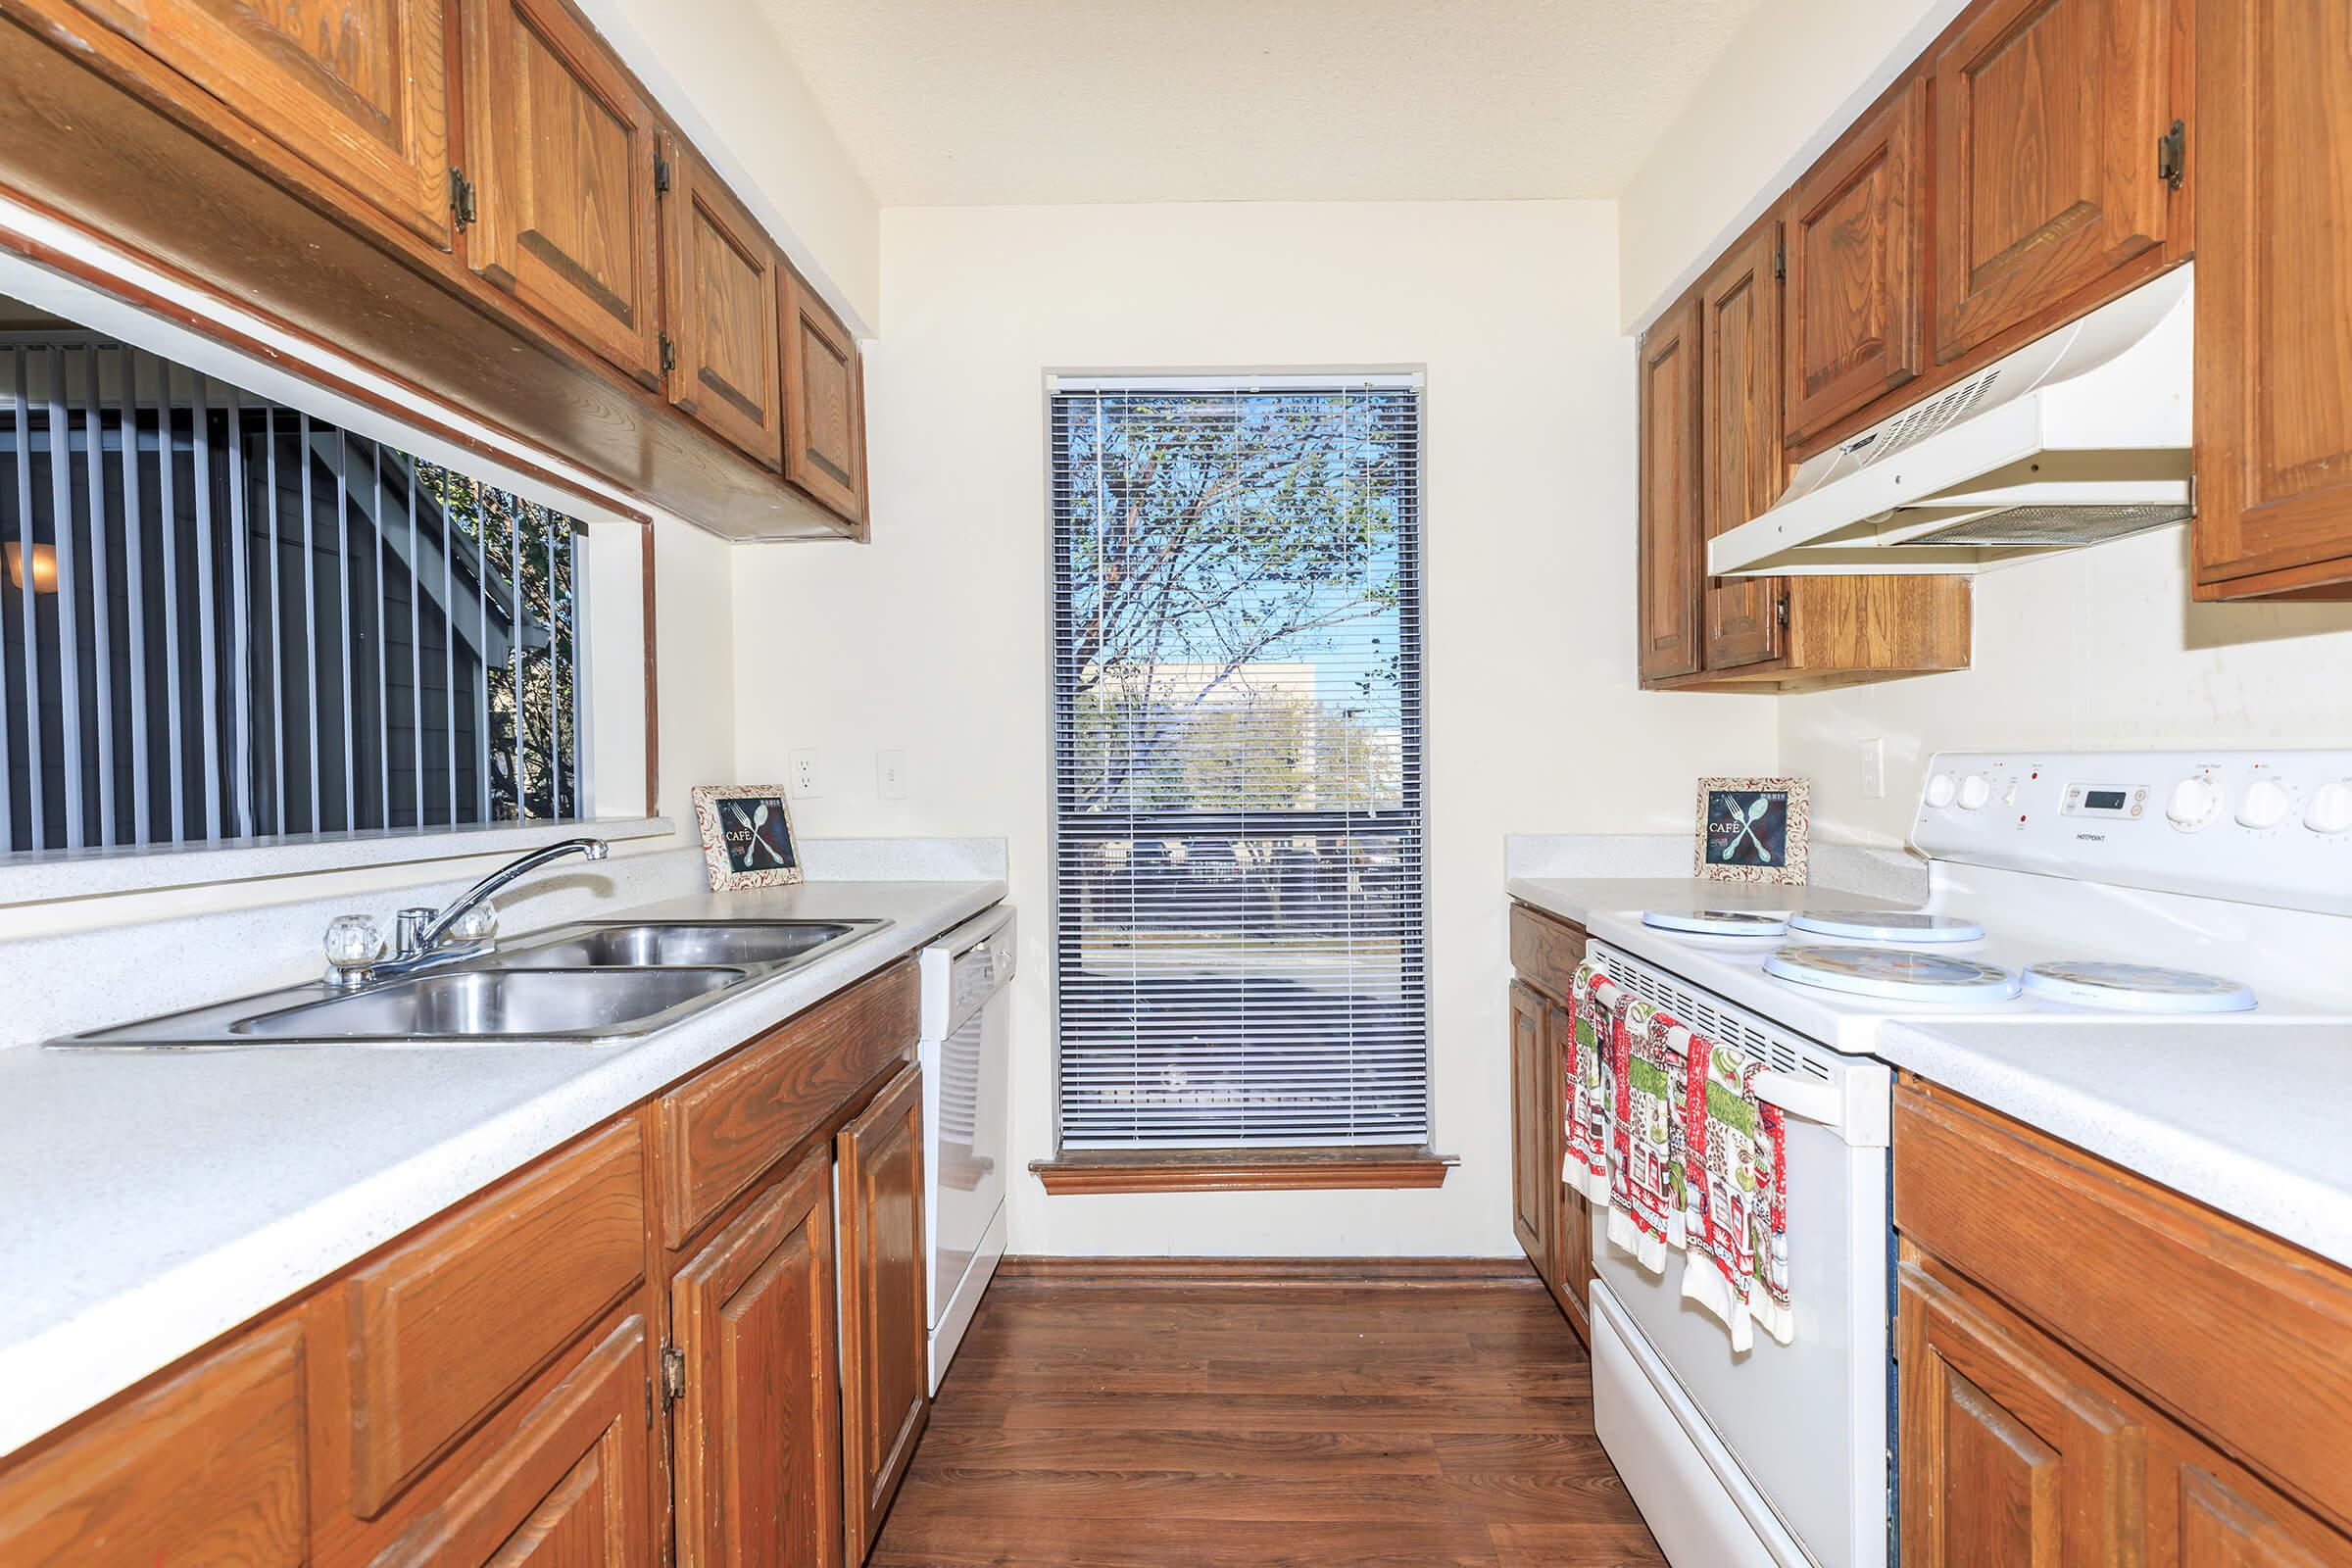 a kitchen with wooden cabinets and a window